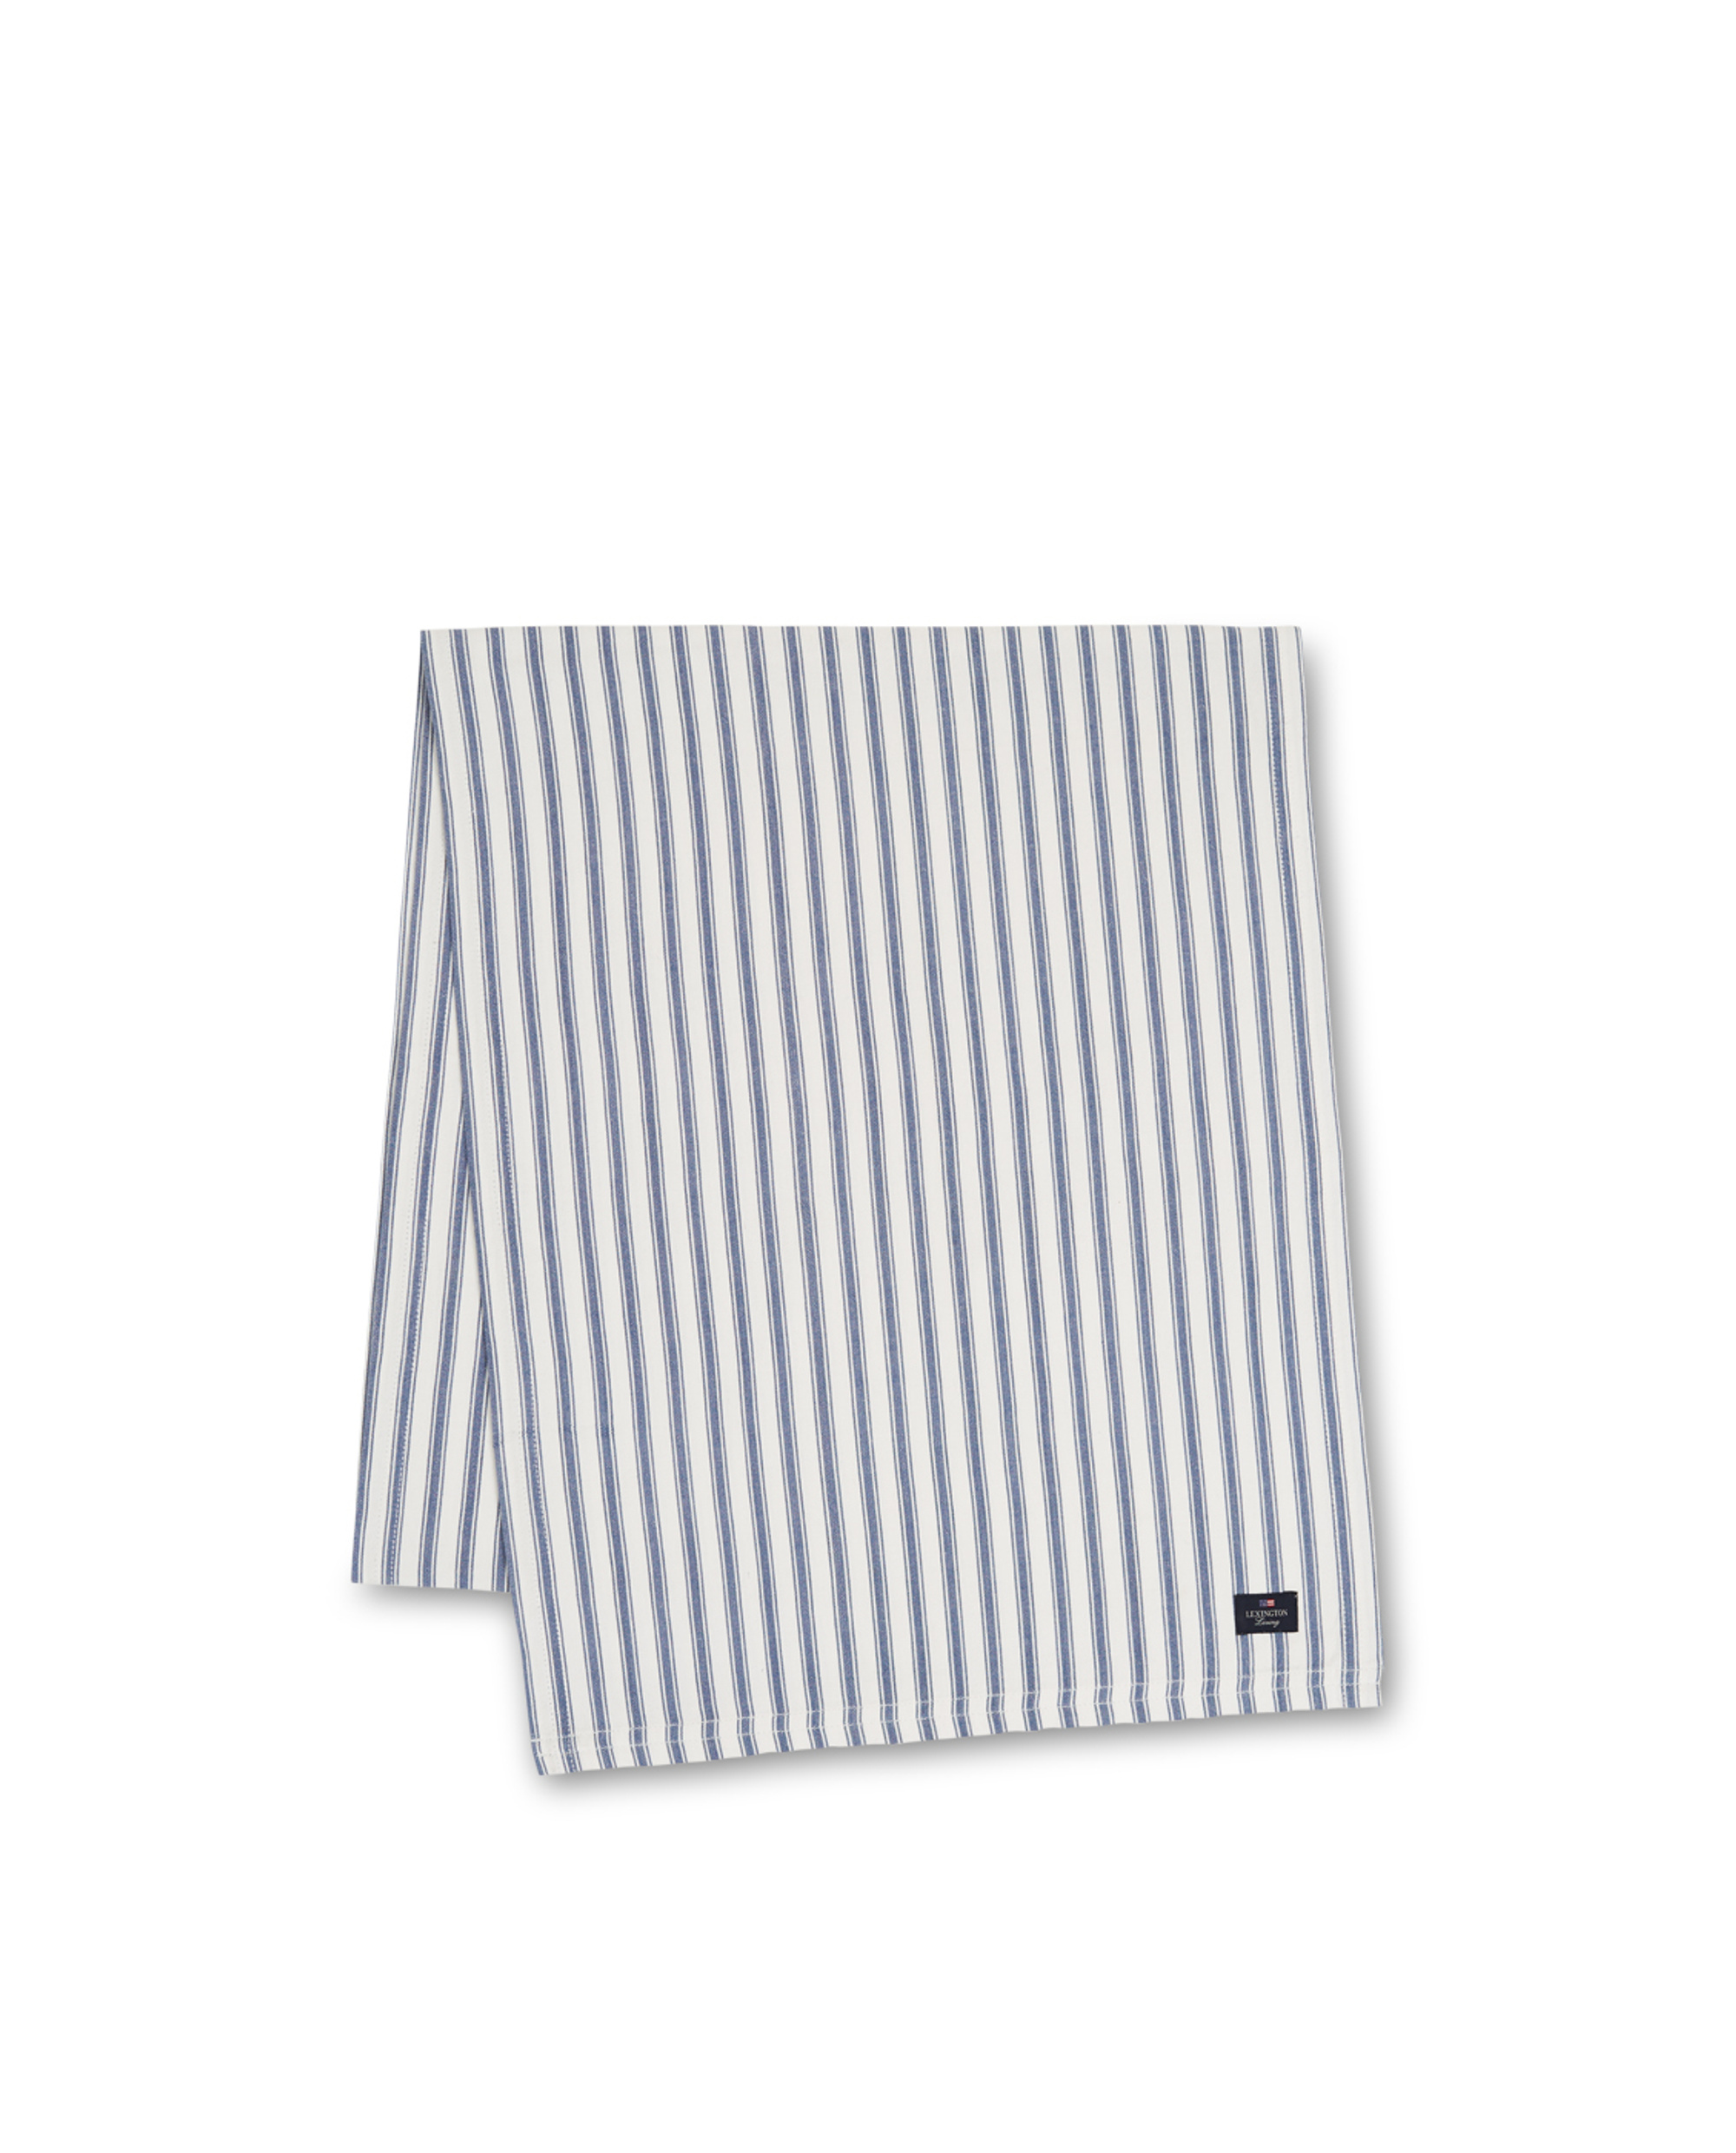 Icons Cotton Herringbone Striped Runner, Blue/White